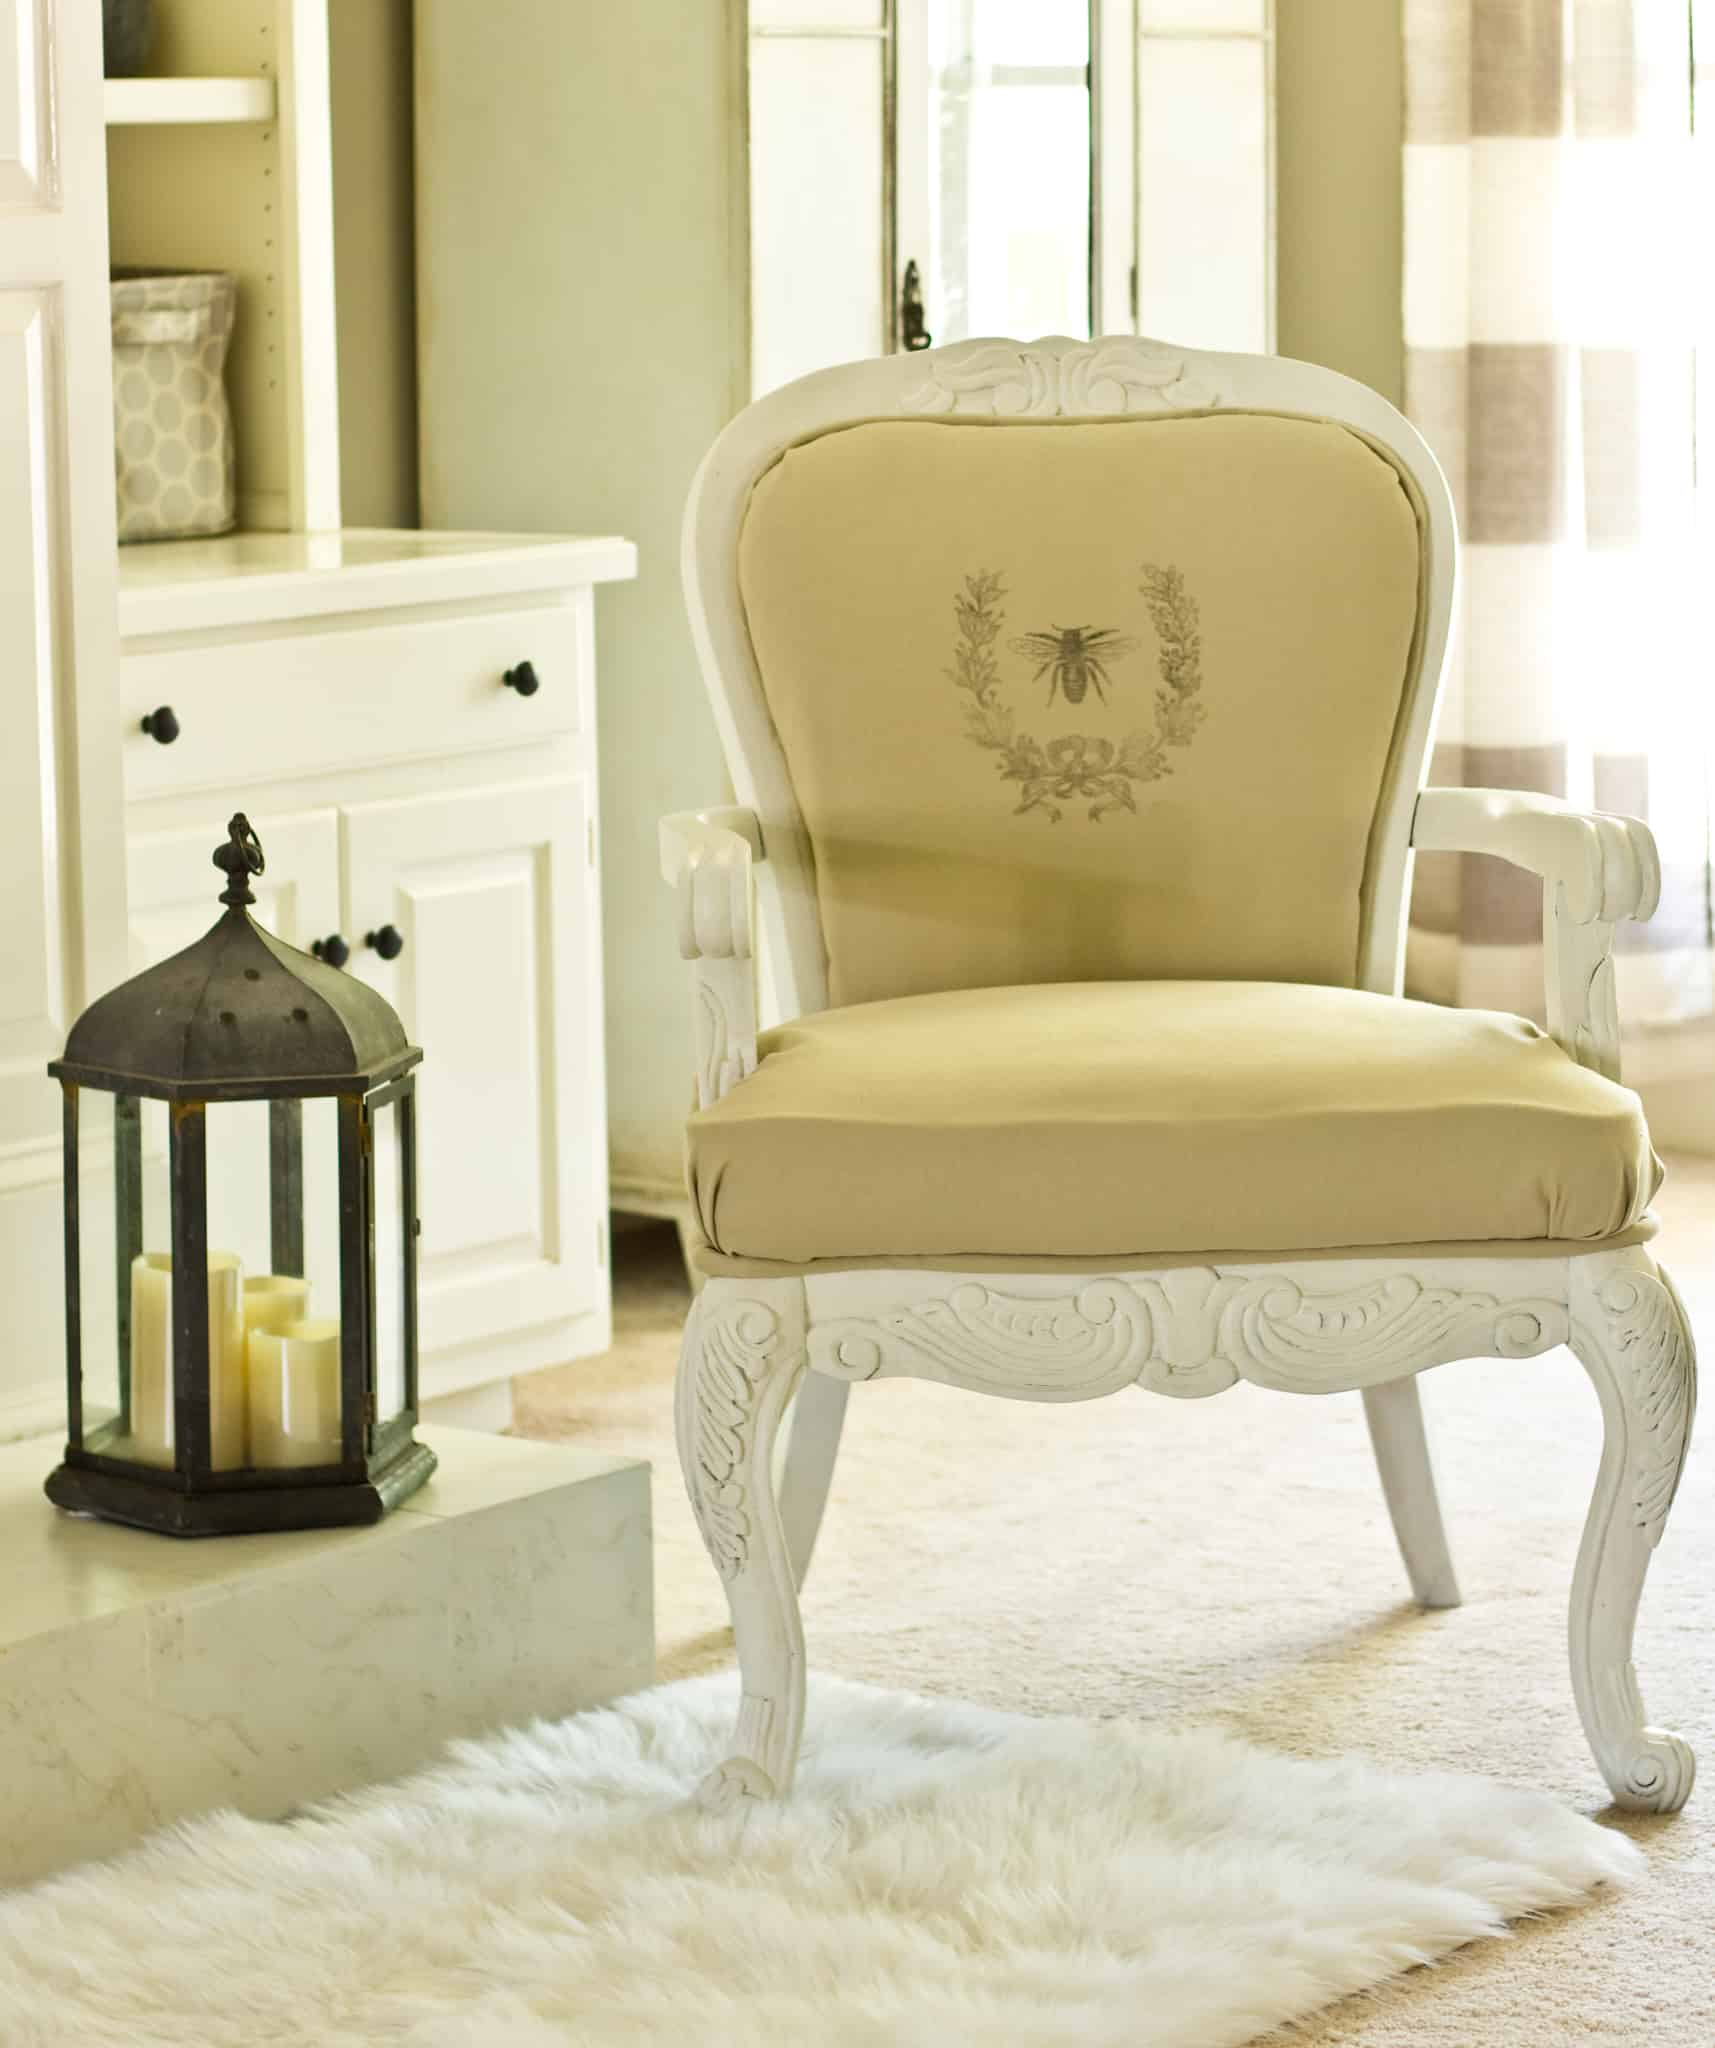 DIY French Chair with Graphic